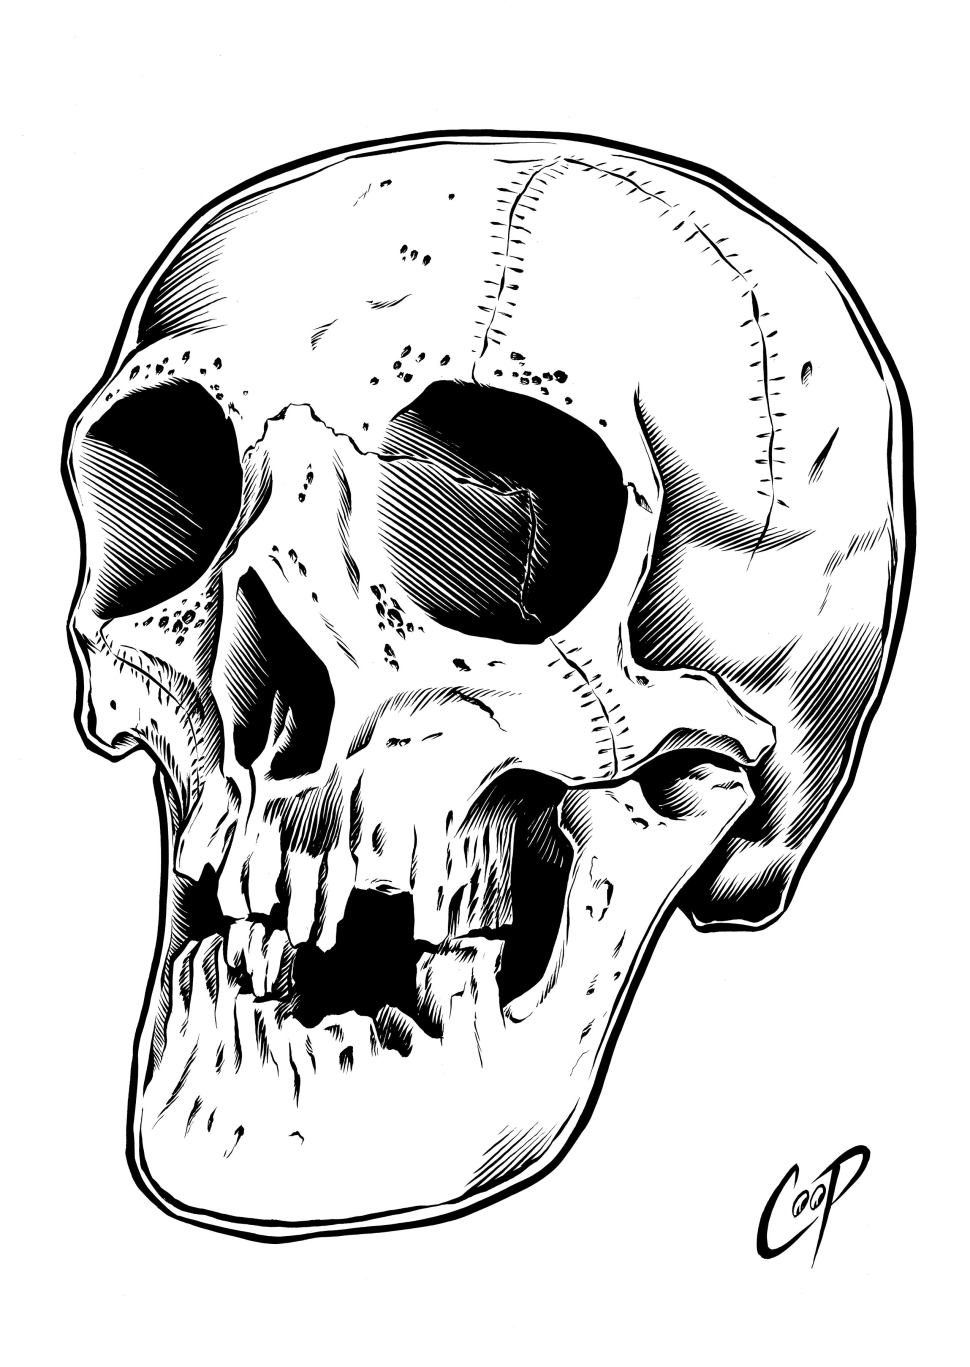 Coop s tribute to Randotti Skulls, from the golden age of Haunted Mansion merchandise